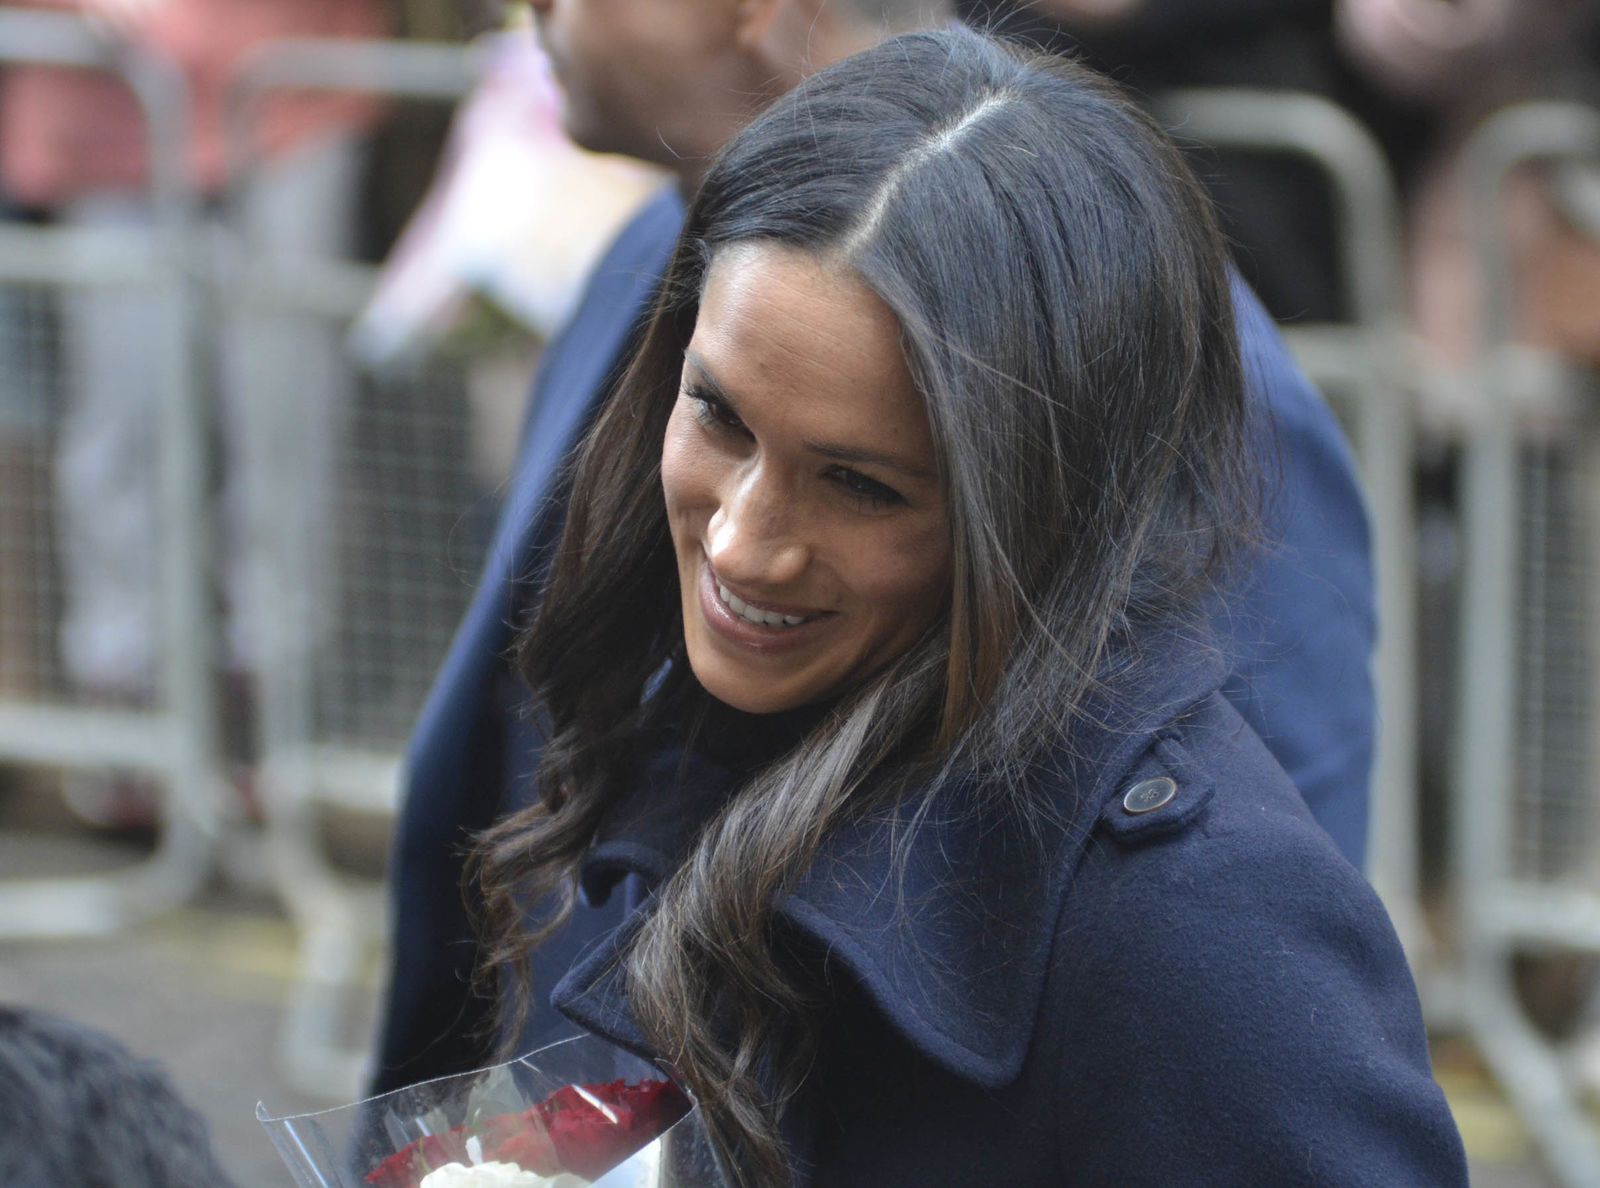 Prince Harry and Meghan Markle attend the Terrence Higgins Trust charity fair at the Nottingham Contemporary Centre                Featuring: Meghan Markle        Where: Nottingham, United Kingdom        When: 01 Dec 2017        Credit: WENN.com                *****No UK Tabloids & Tabloid Websites*****